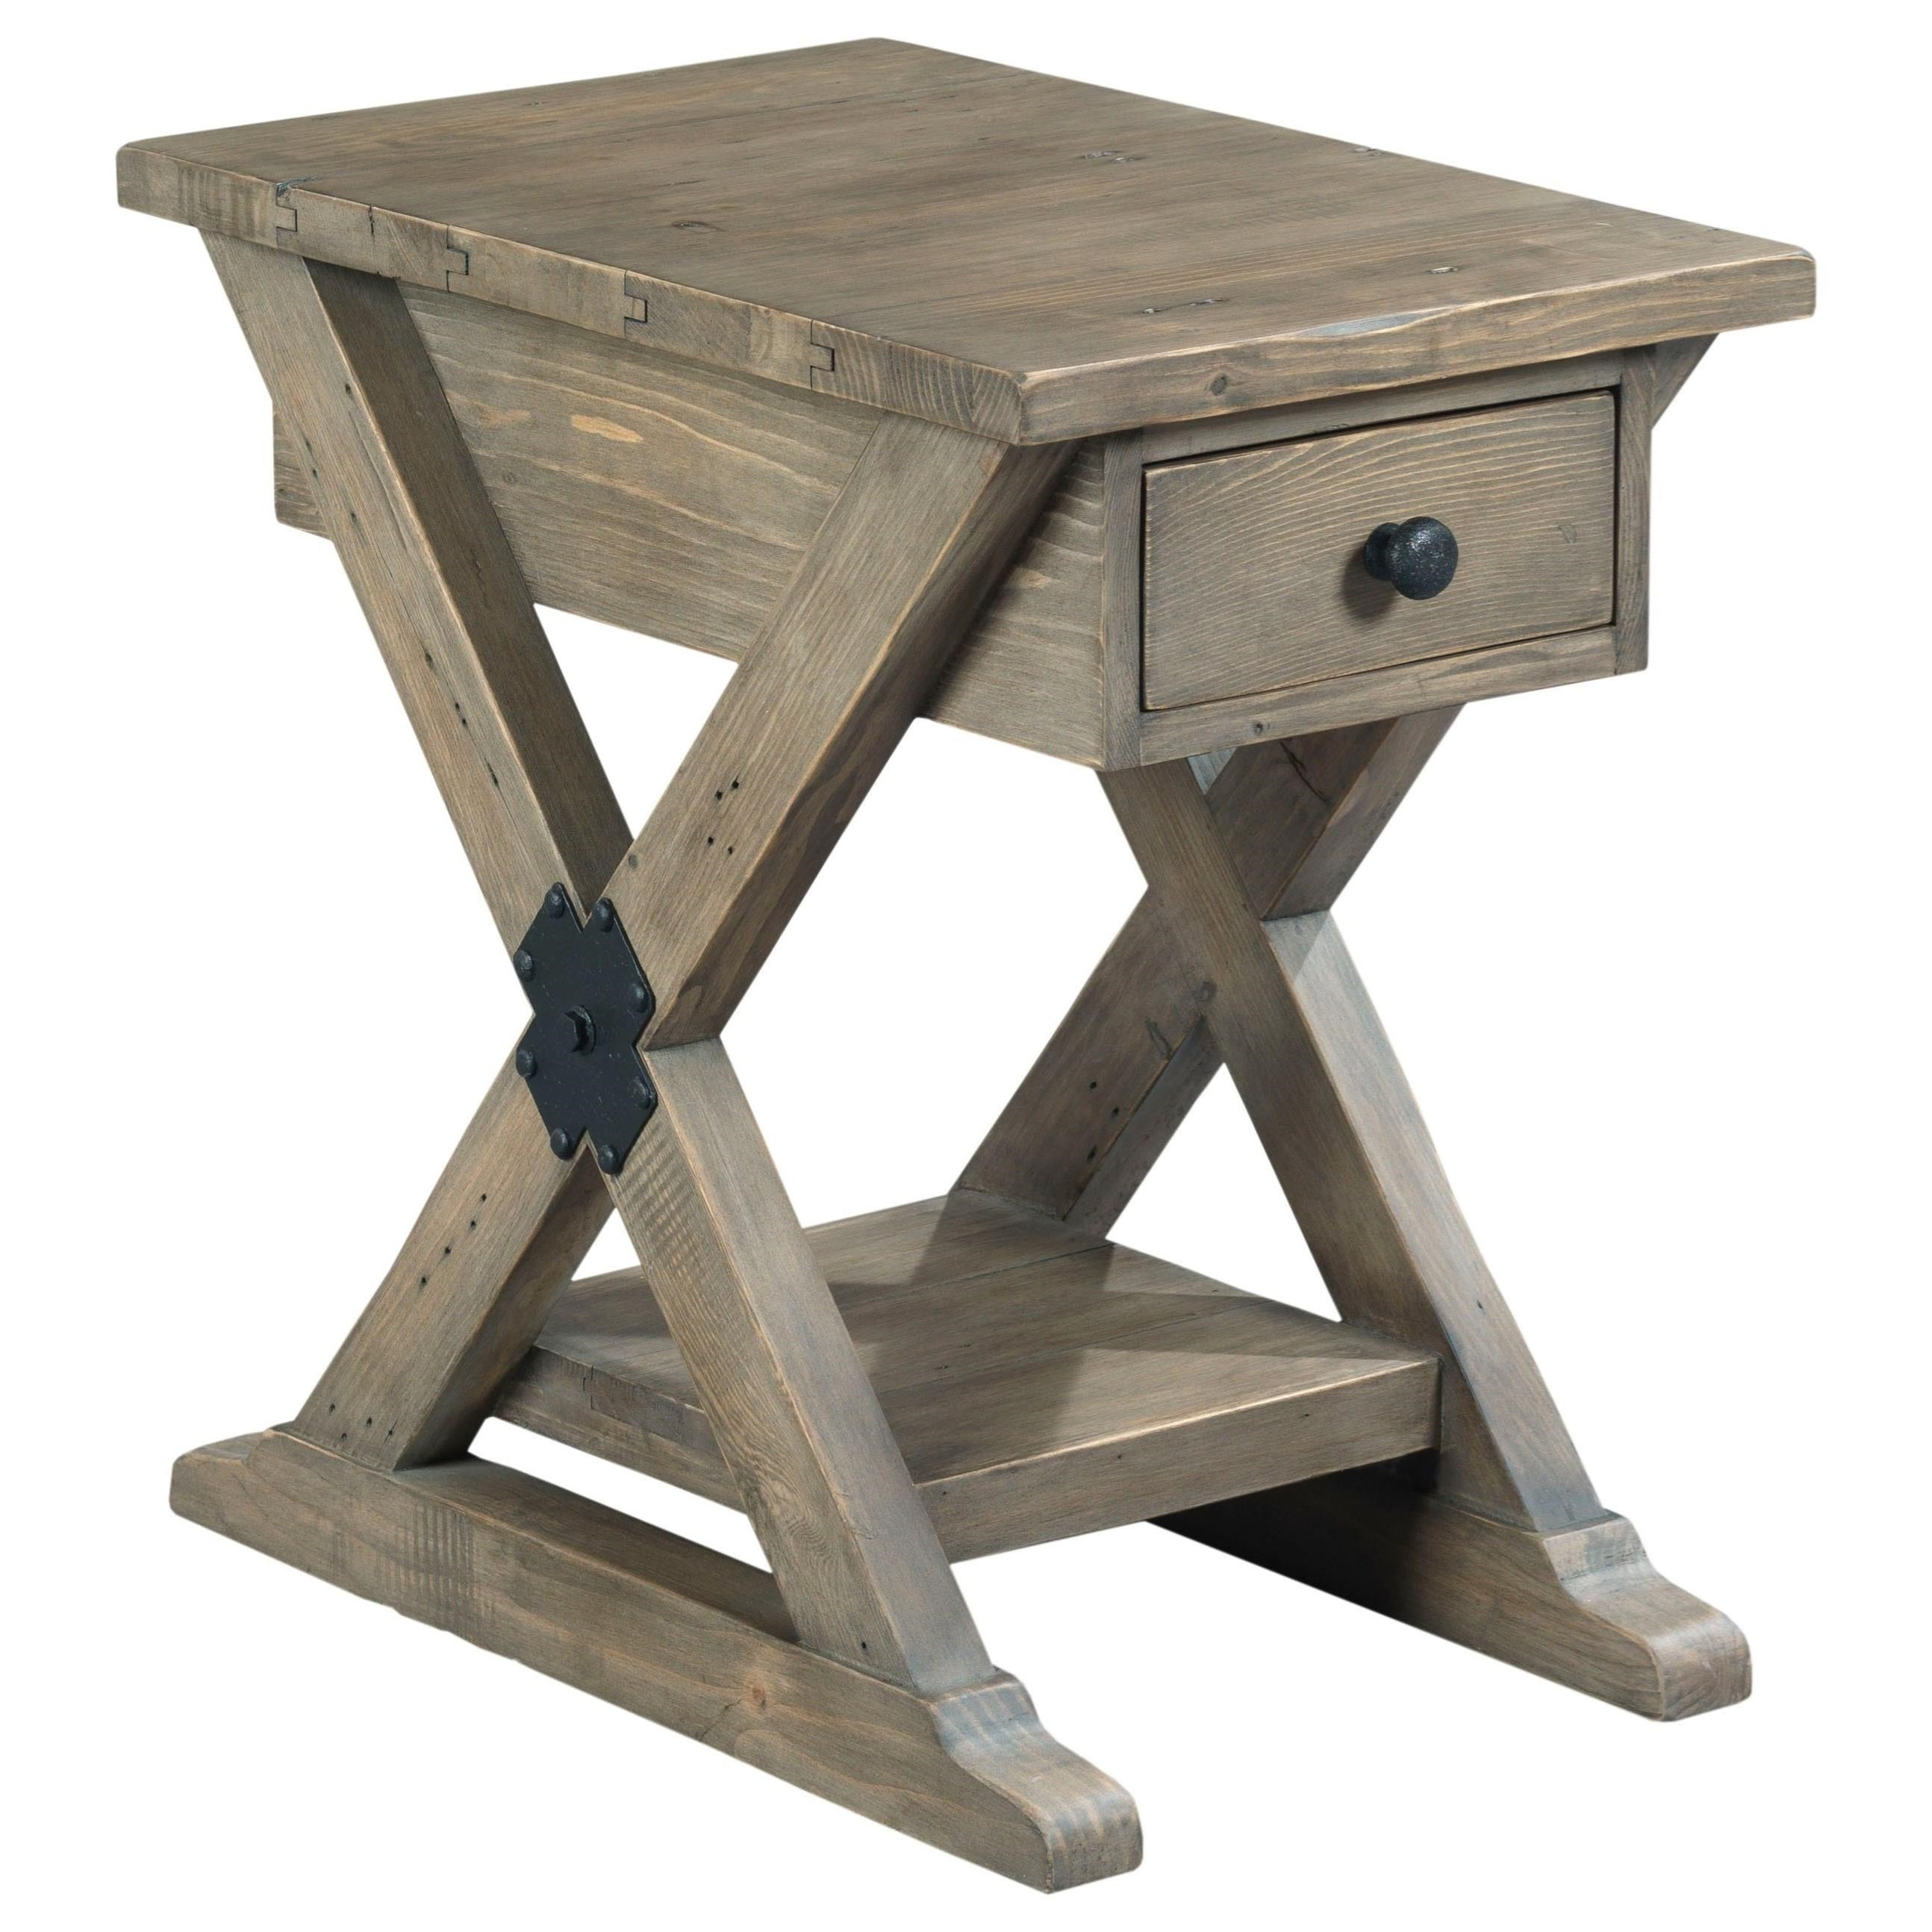 Reclamation Place Chairside Table by Hammary at Zak's Home